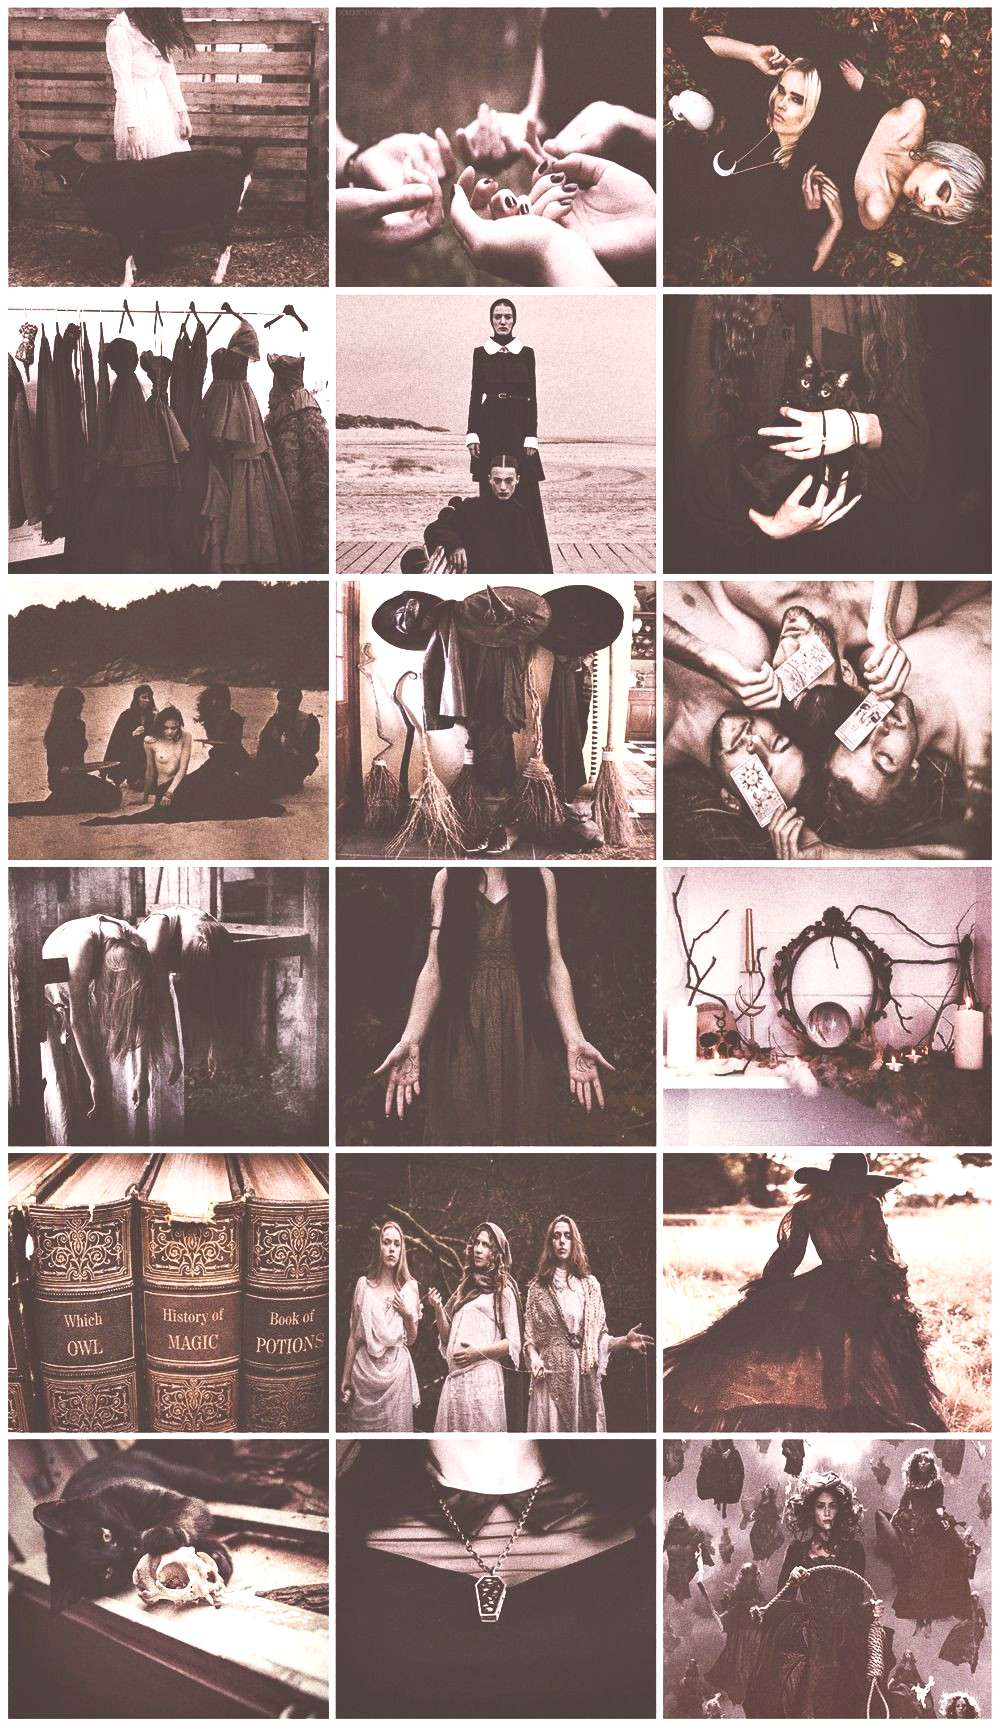 salem  town of salem  witch  witches  witchcraft  wicca  fantasy  magic  black  vintage